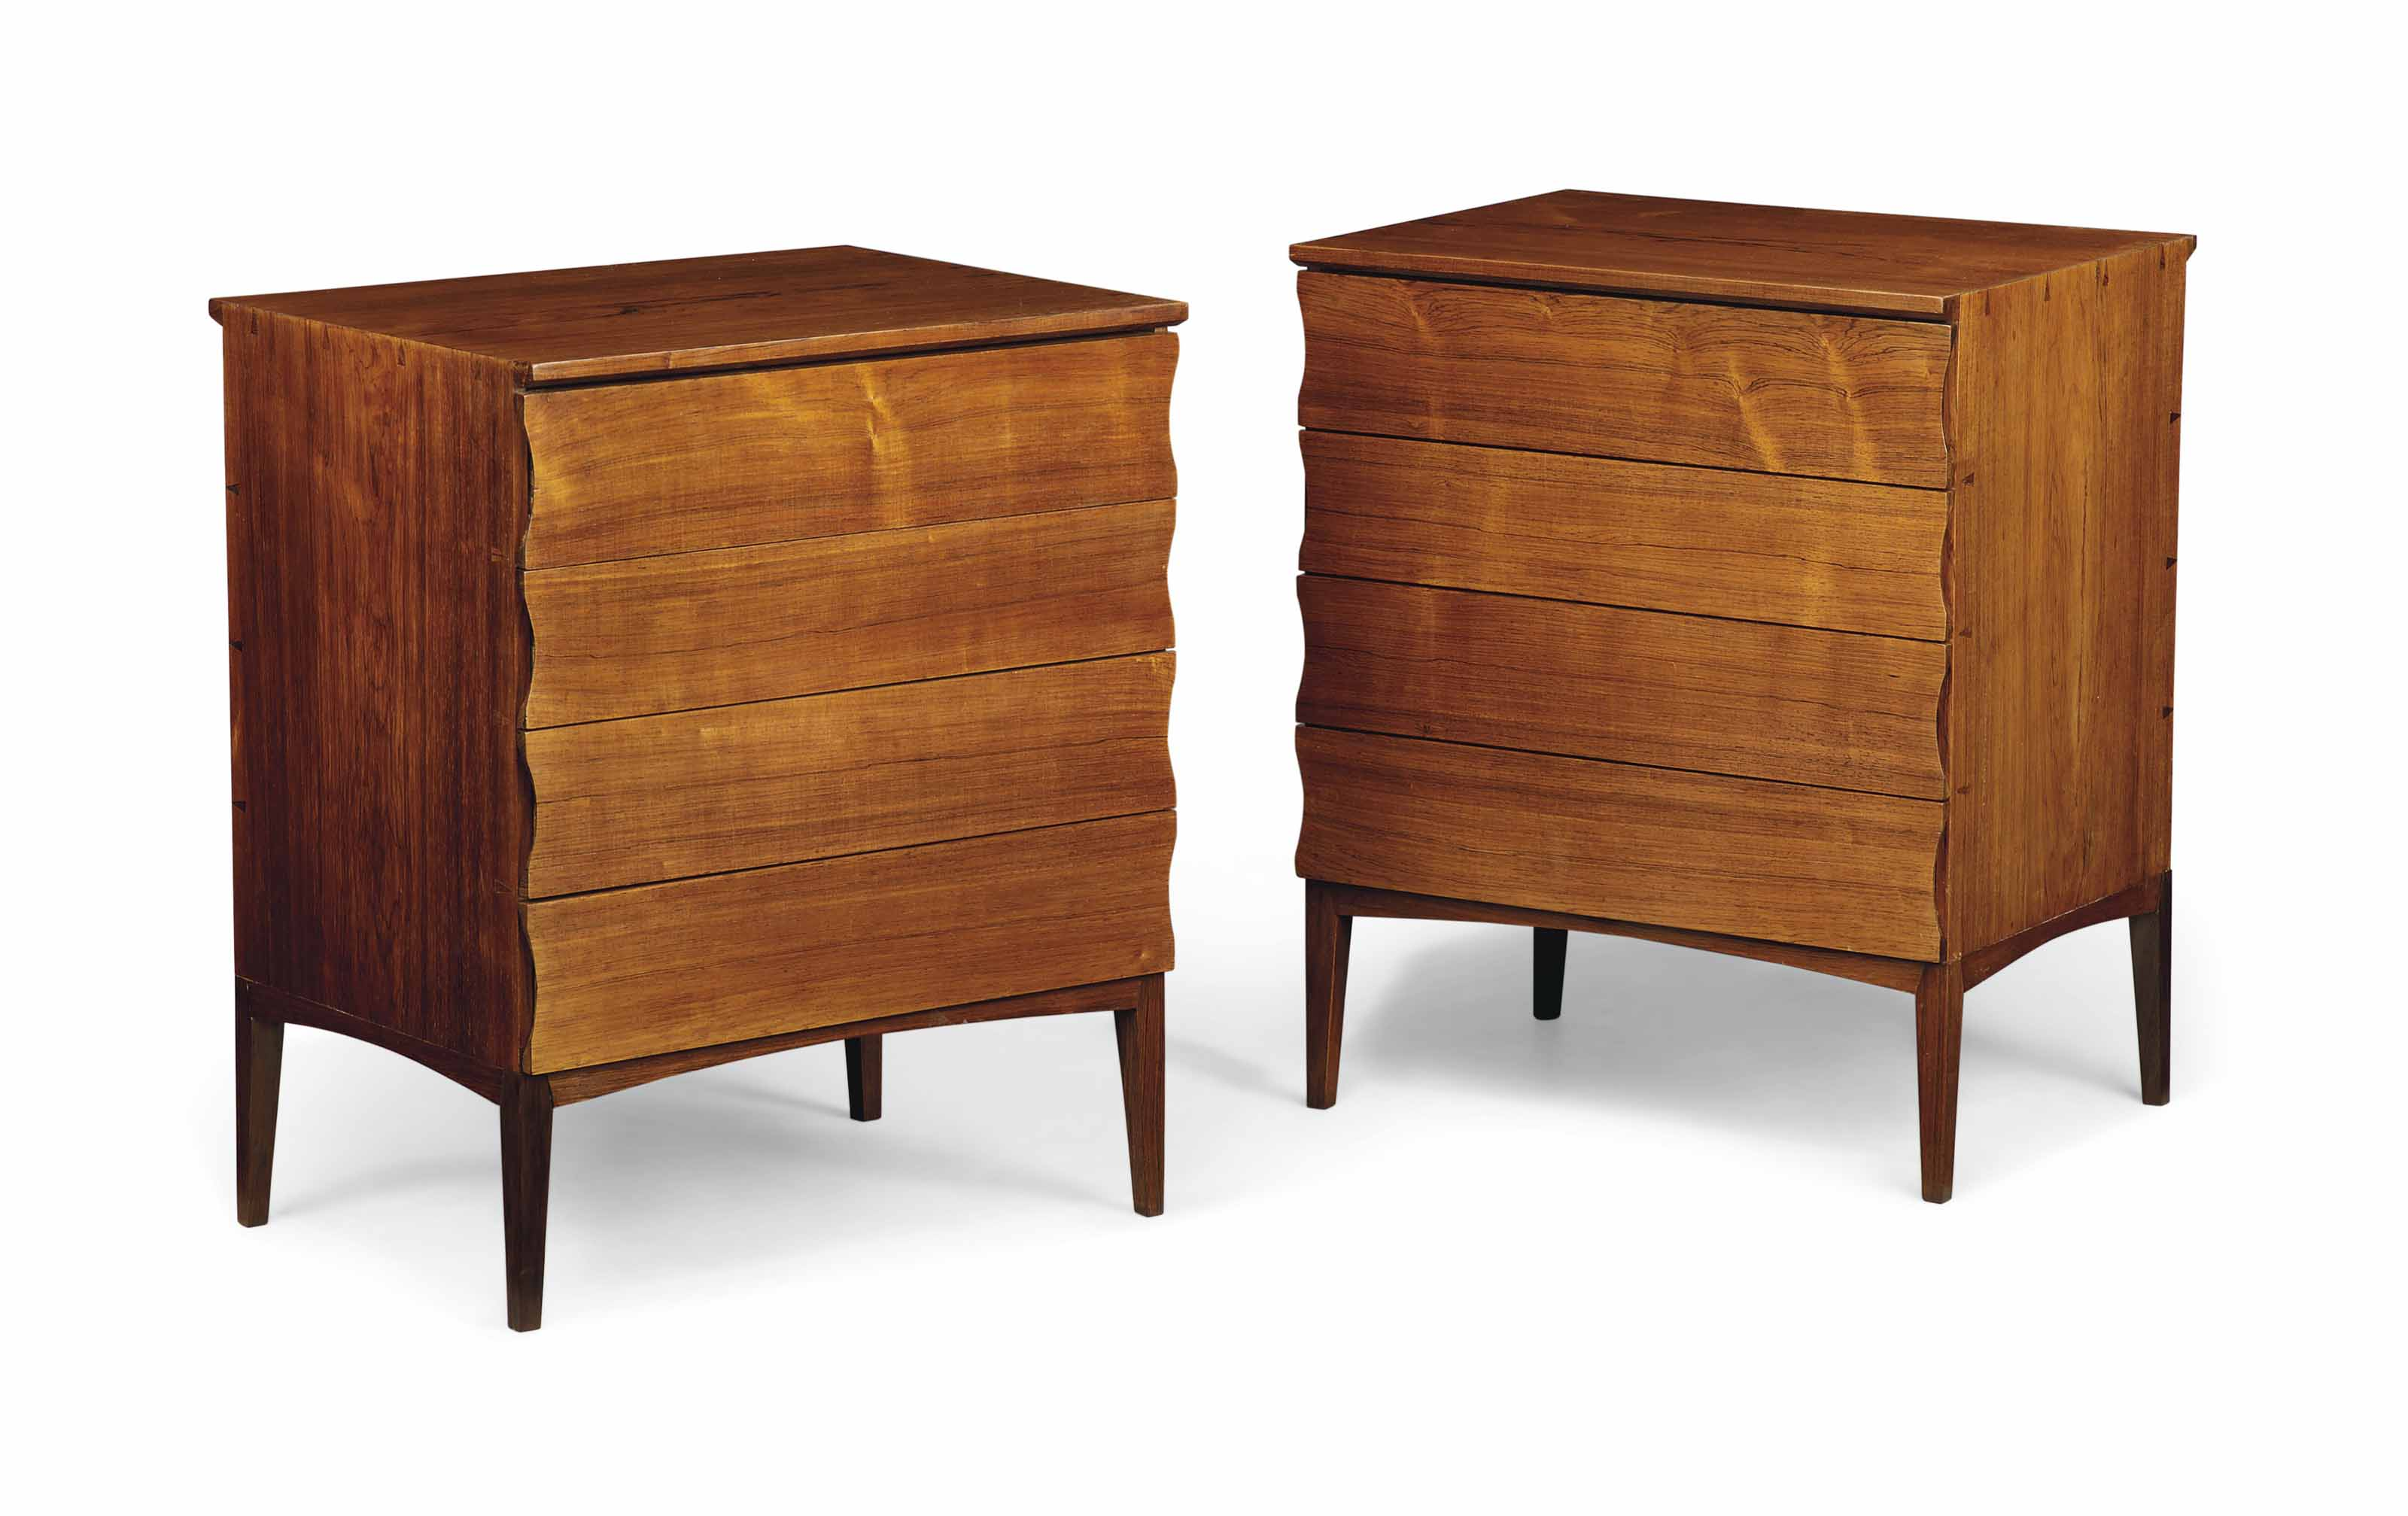 A PAIR OF DANISH, BRAZILIAN ROSEWOOD SIDE CABINETS POSSIBLY DESIGNED BY FRITZ HENNINGSEN